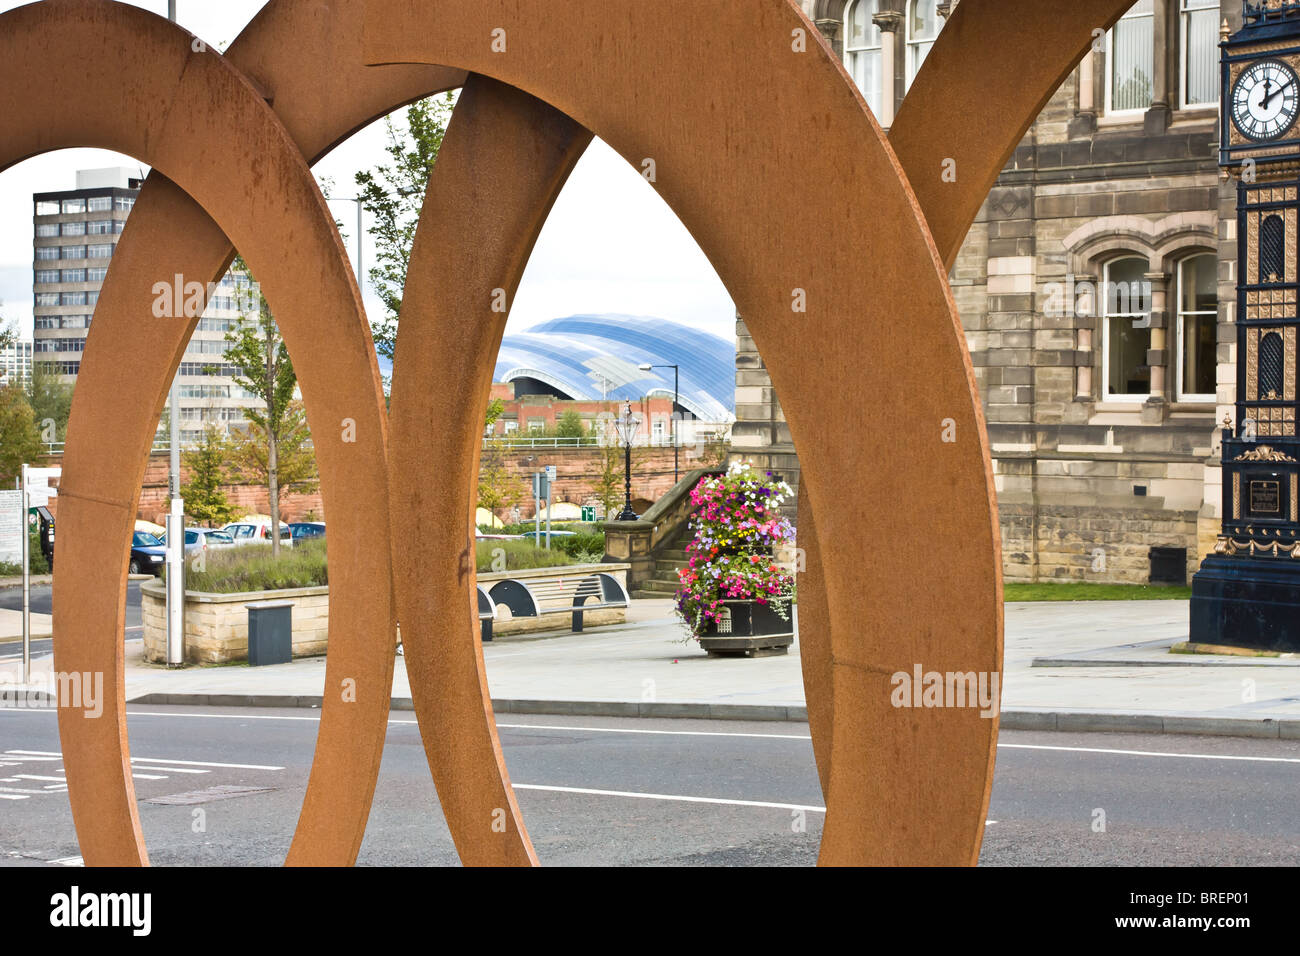 Public Art Sculpture by John Creed called Acceleration located outside Gateshead Town Hall. - Stock Image